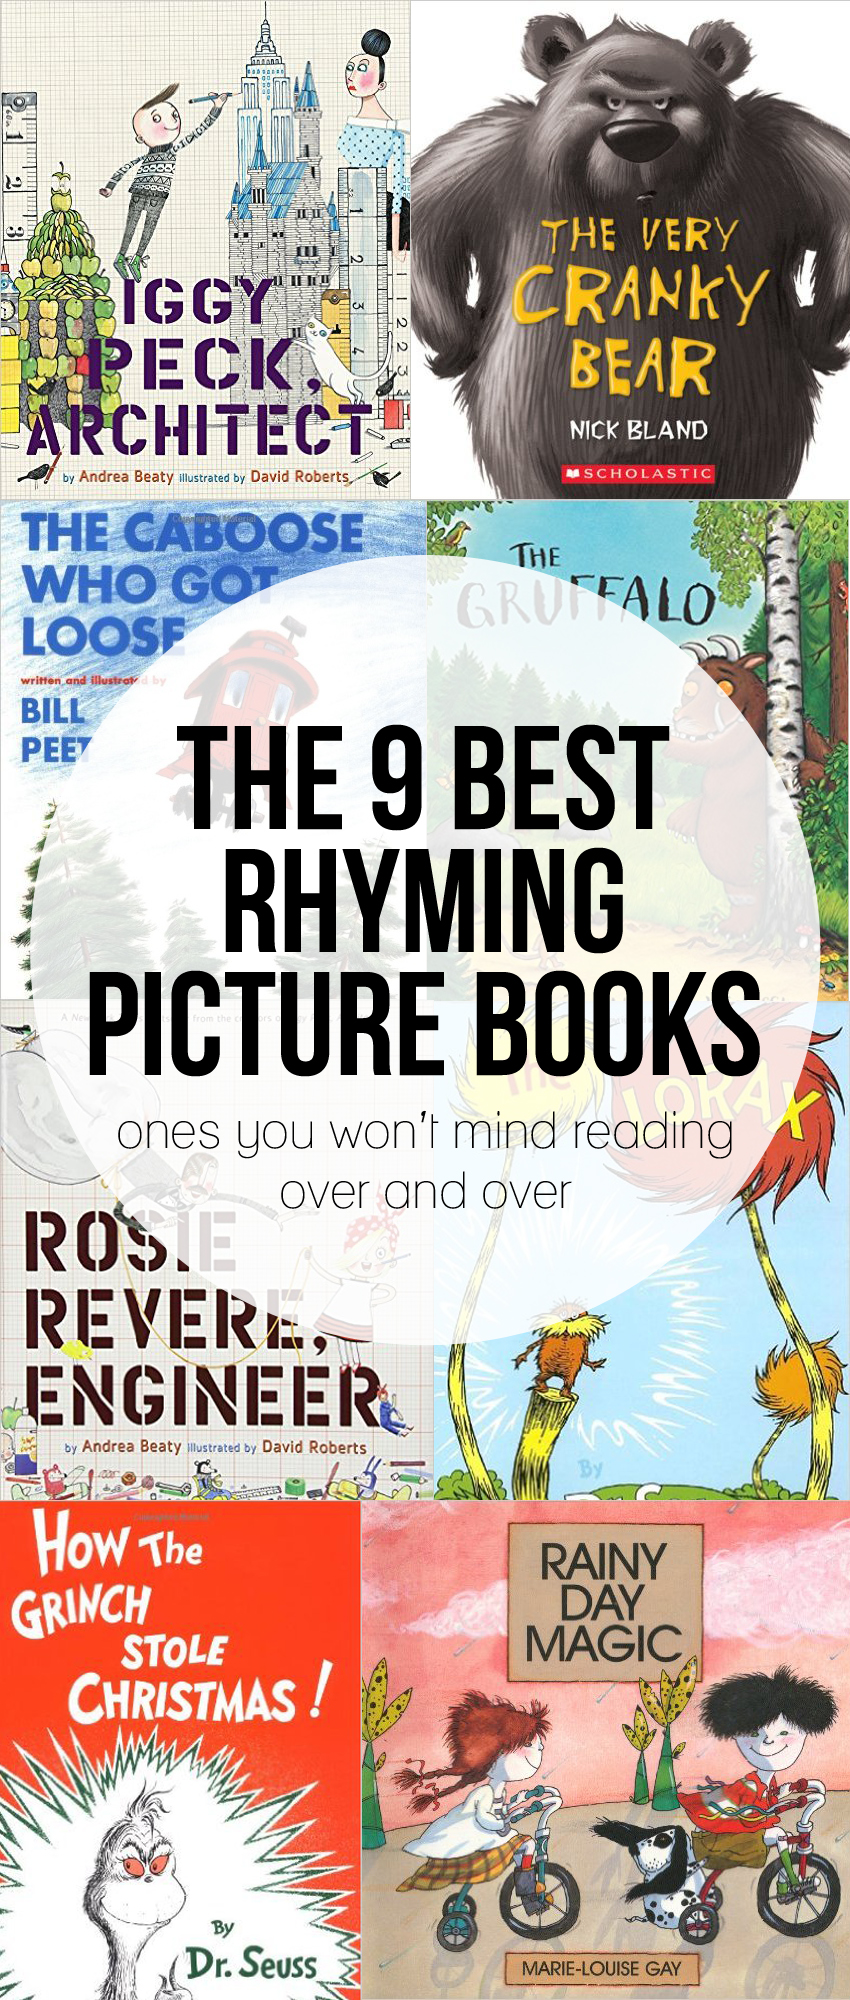 The Best Rhyming Picture Books that I don't mind reading over and over and over again.